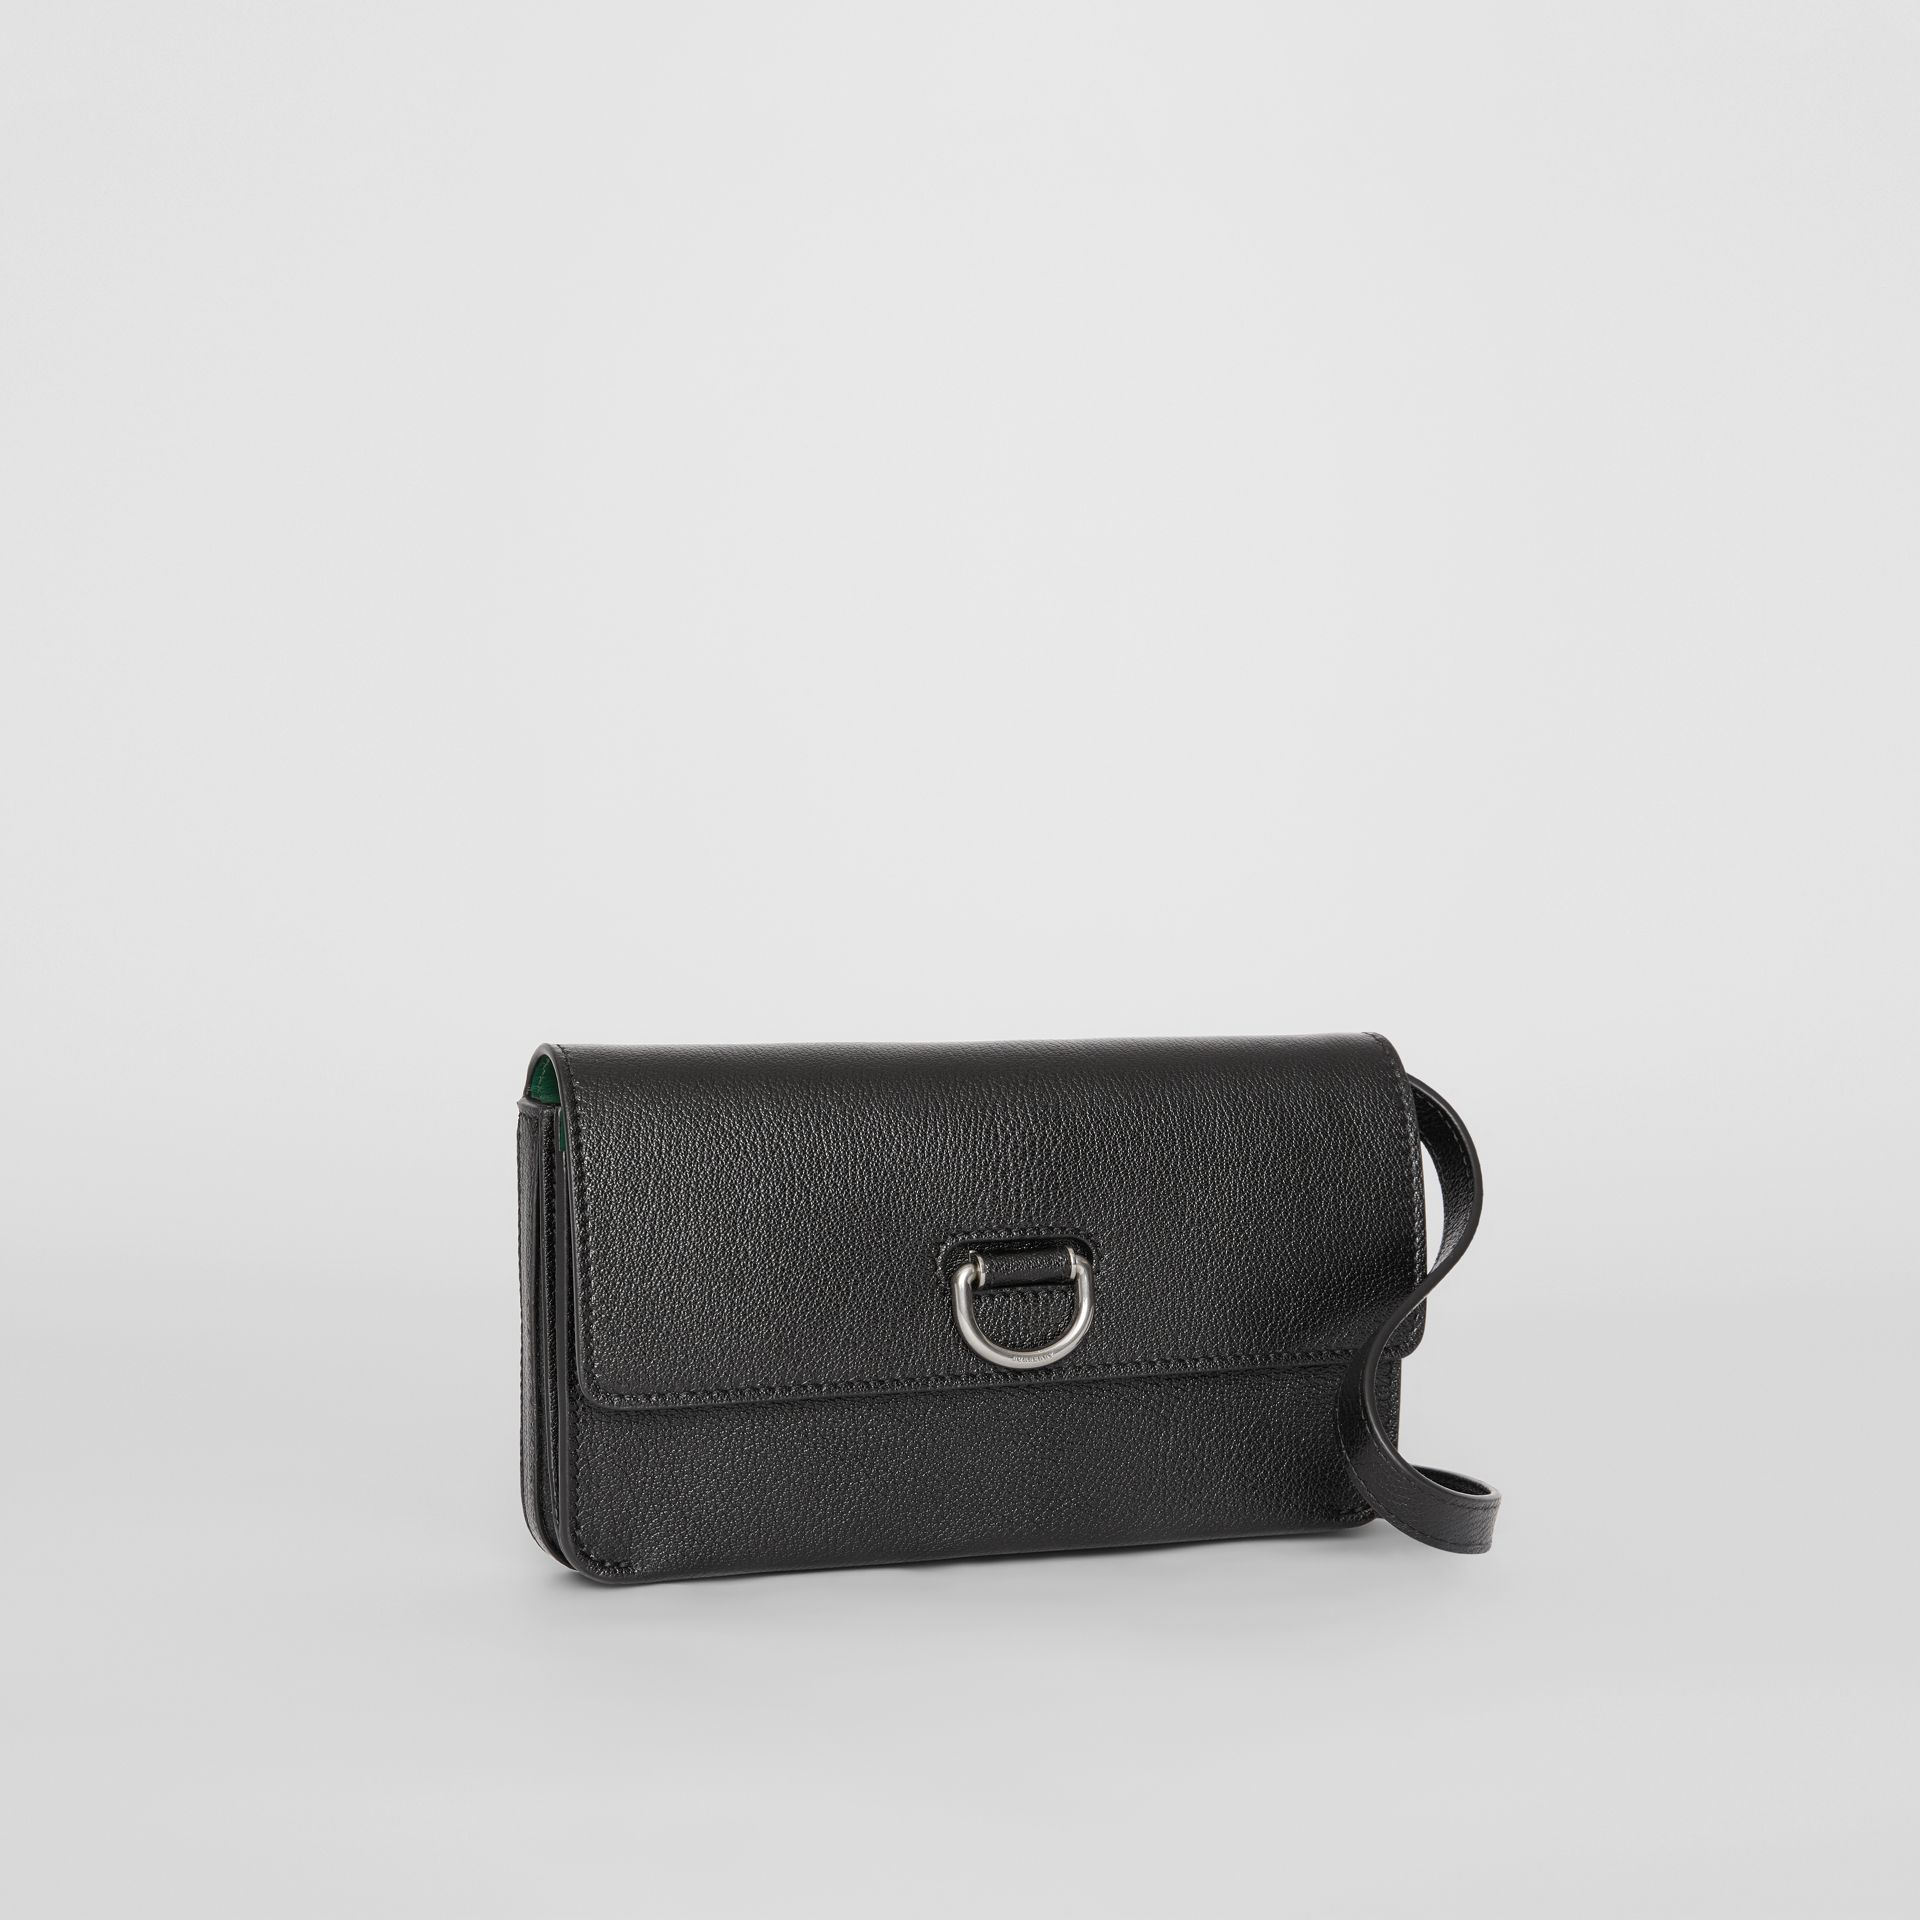 D-ring Leather Wallet with Detachable Strap in Black - Women | Burberry - gallery image 6